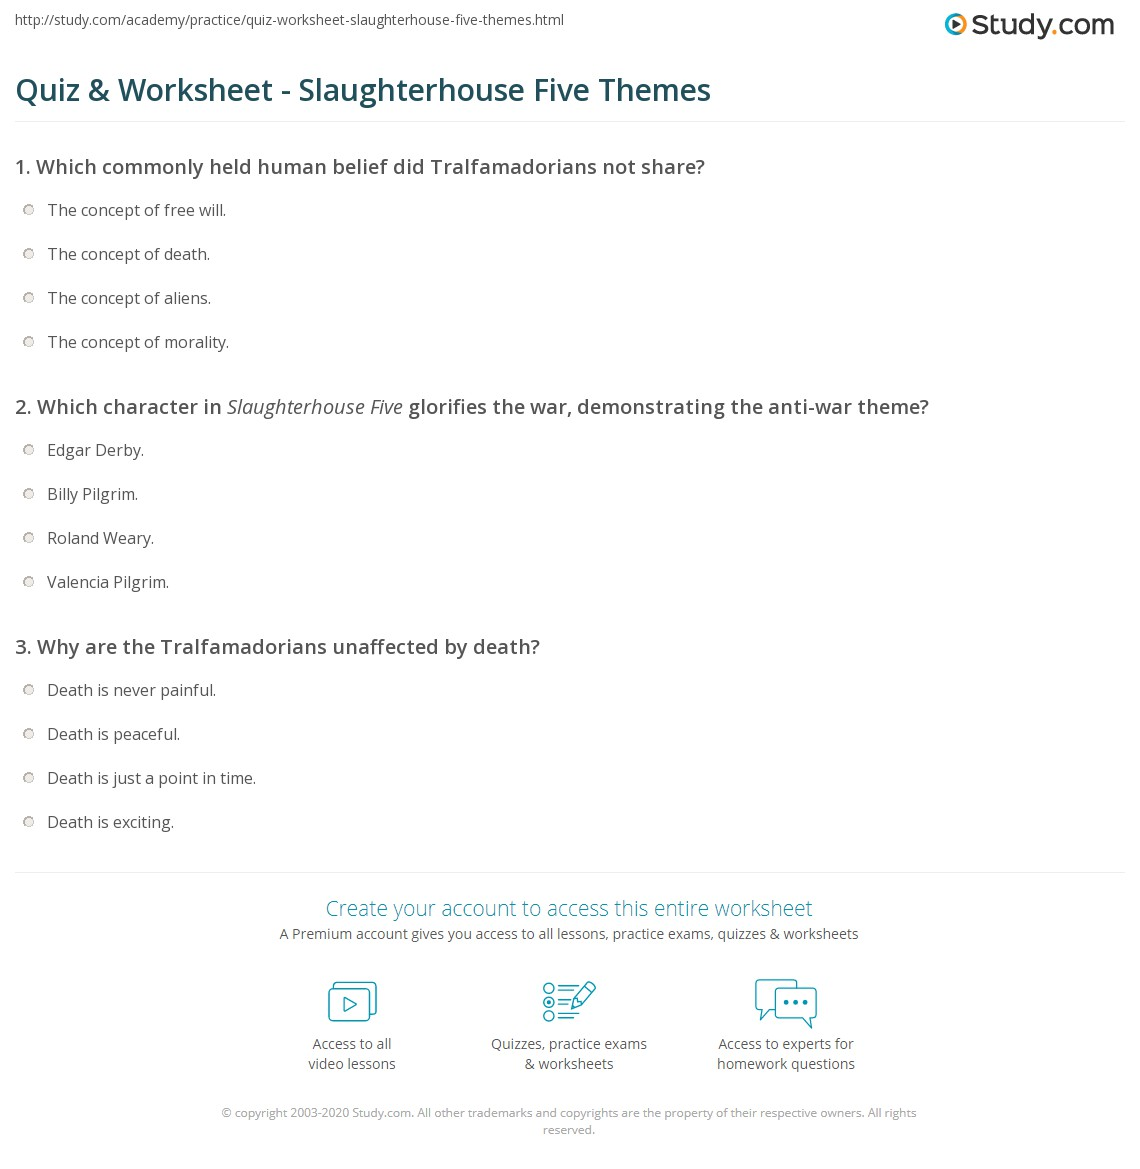 quiz worksheet slaughterhouse five themes com print themes in slaughterhouse five worksheet